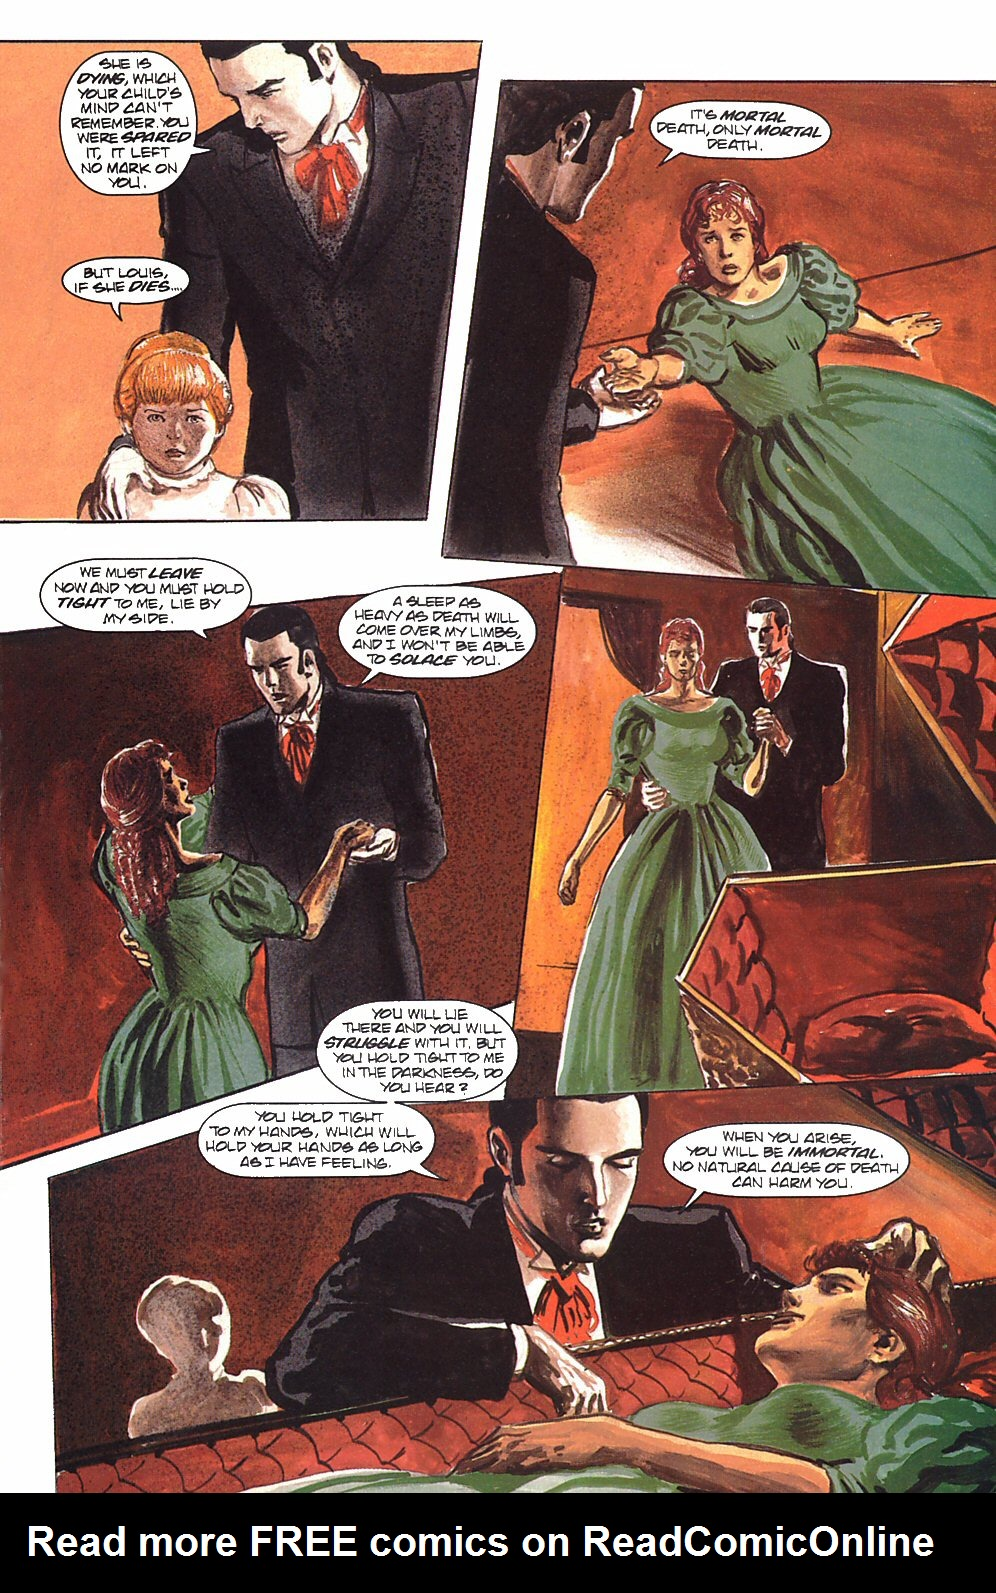 Read online Anne Rice's Interview with the Vampire comic -  Issue #9 - 31